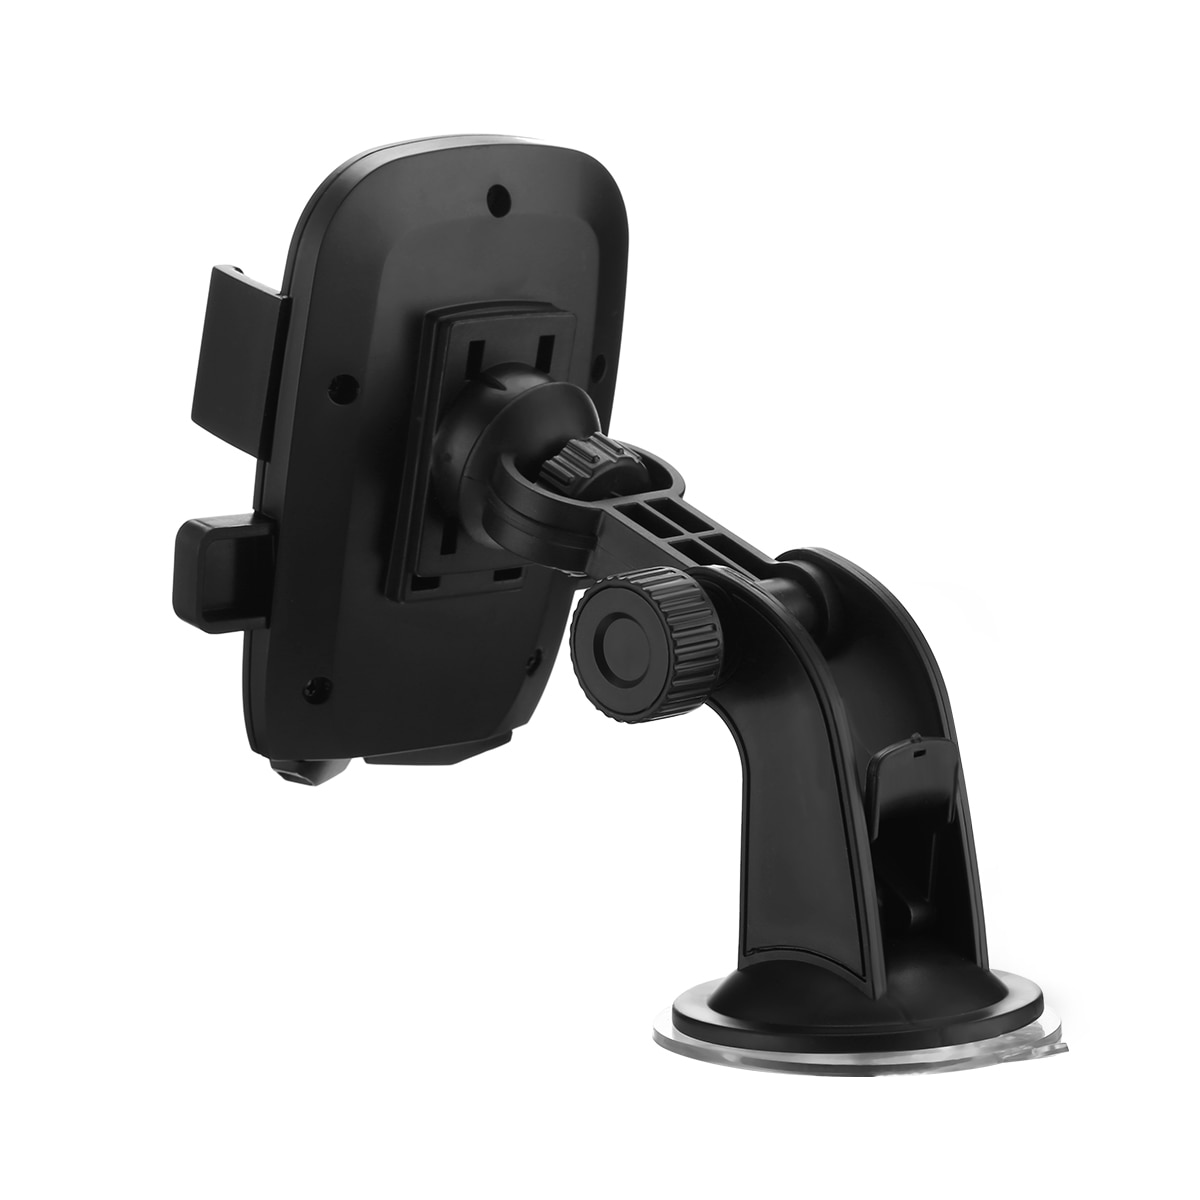 Hac72f224a2fe46ebbdc34f799f571e12M - 360 Degree Rotatable Car Phone Holder For 2.4 to 3.4inch Phone Mount Stand in Car Bracket For Poco x3 pro iPhone Xiaomi Samsung